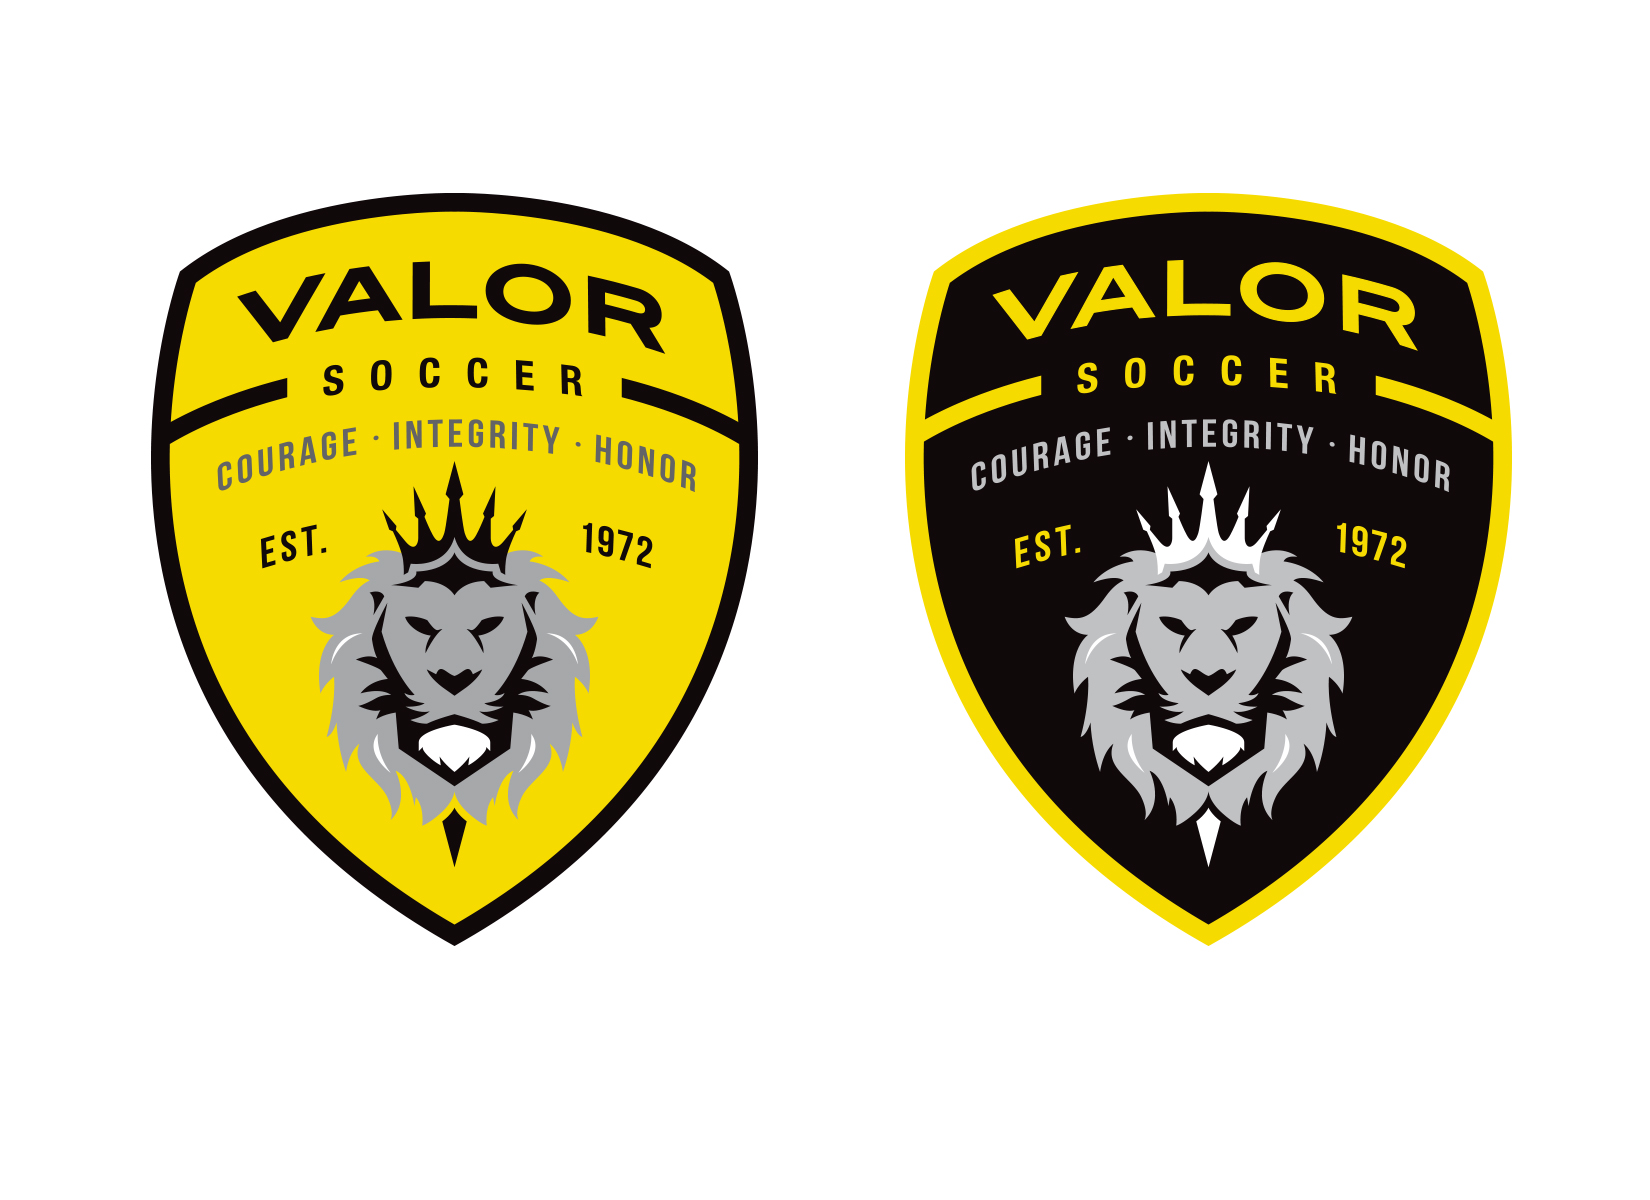 valor-custom-soccer-crest-designs-by-jordan-fretz-2.jpg